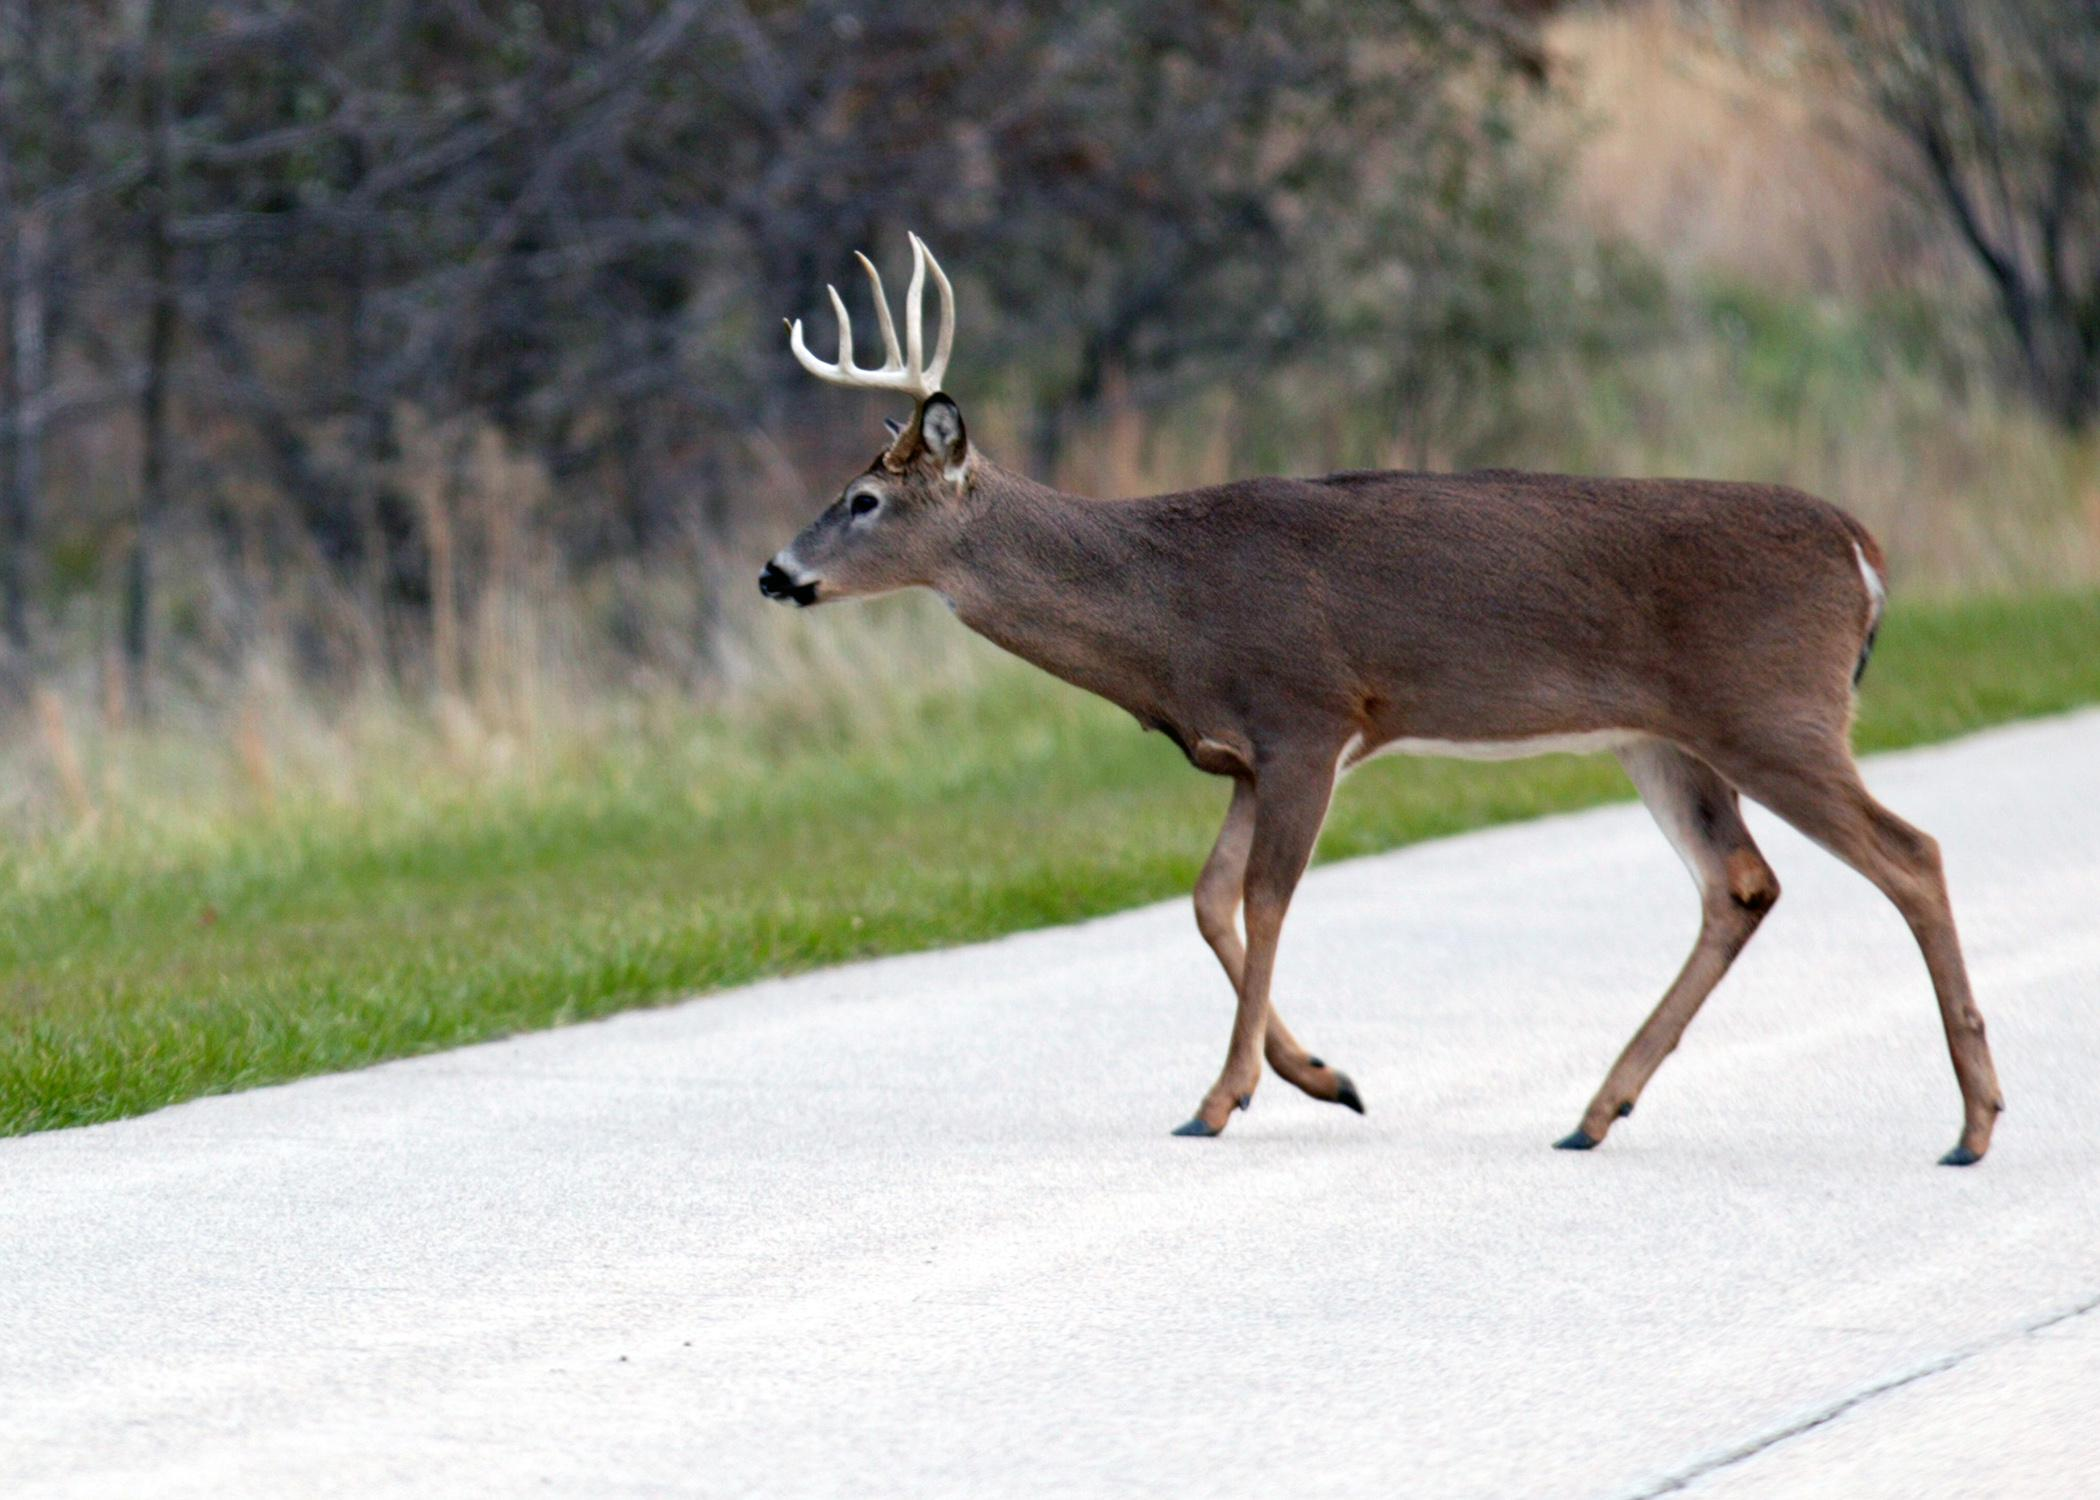 Wildlife-vehicle collisions often occur at dawn and dusk, when wildlife are most active. (Submitted photo)